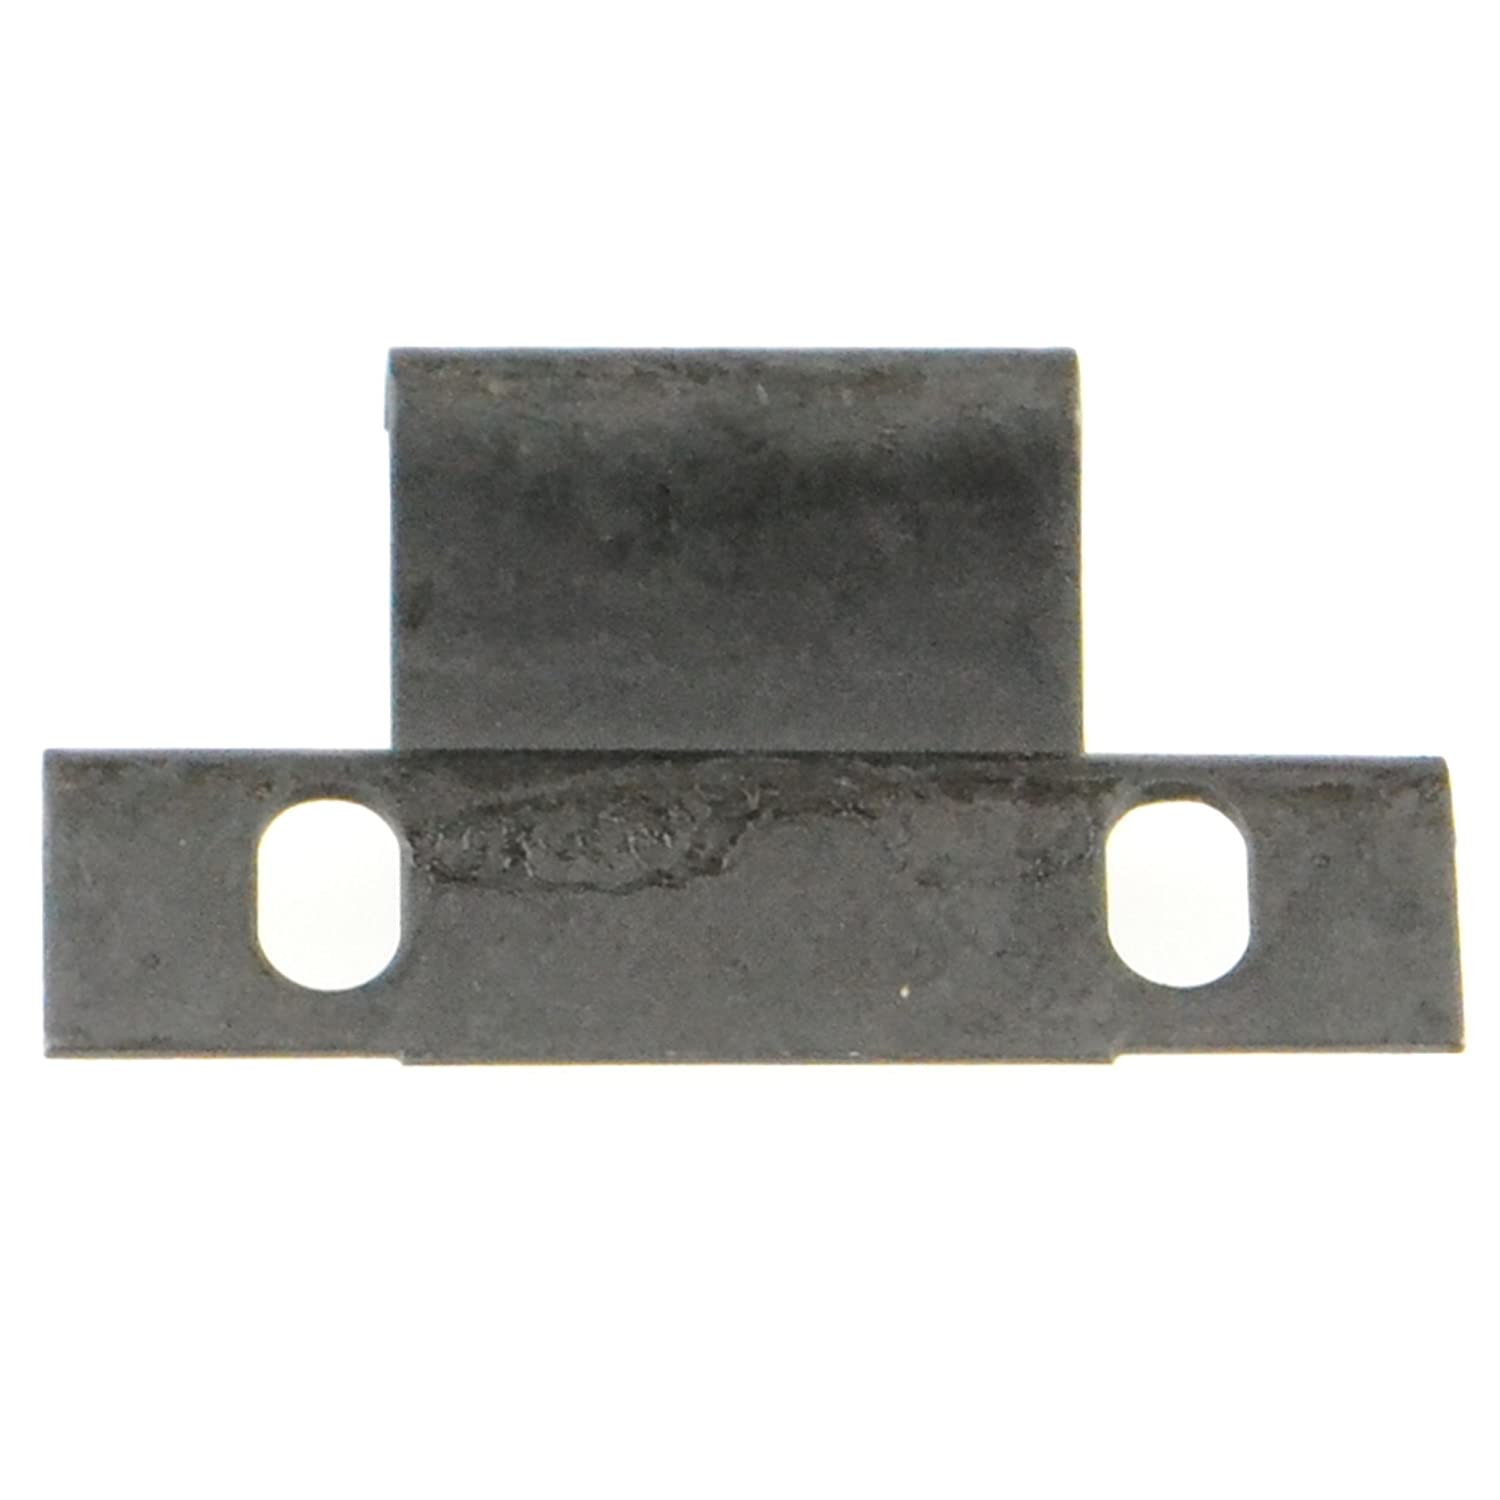 Pewter Supply Technologies 073050-04-000 Mounting Clip for Interior Dashboards and Valances